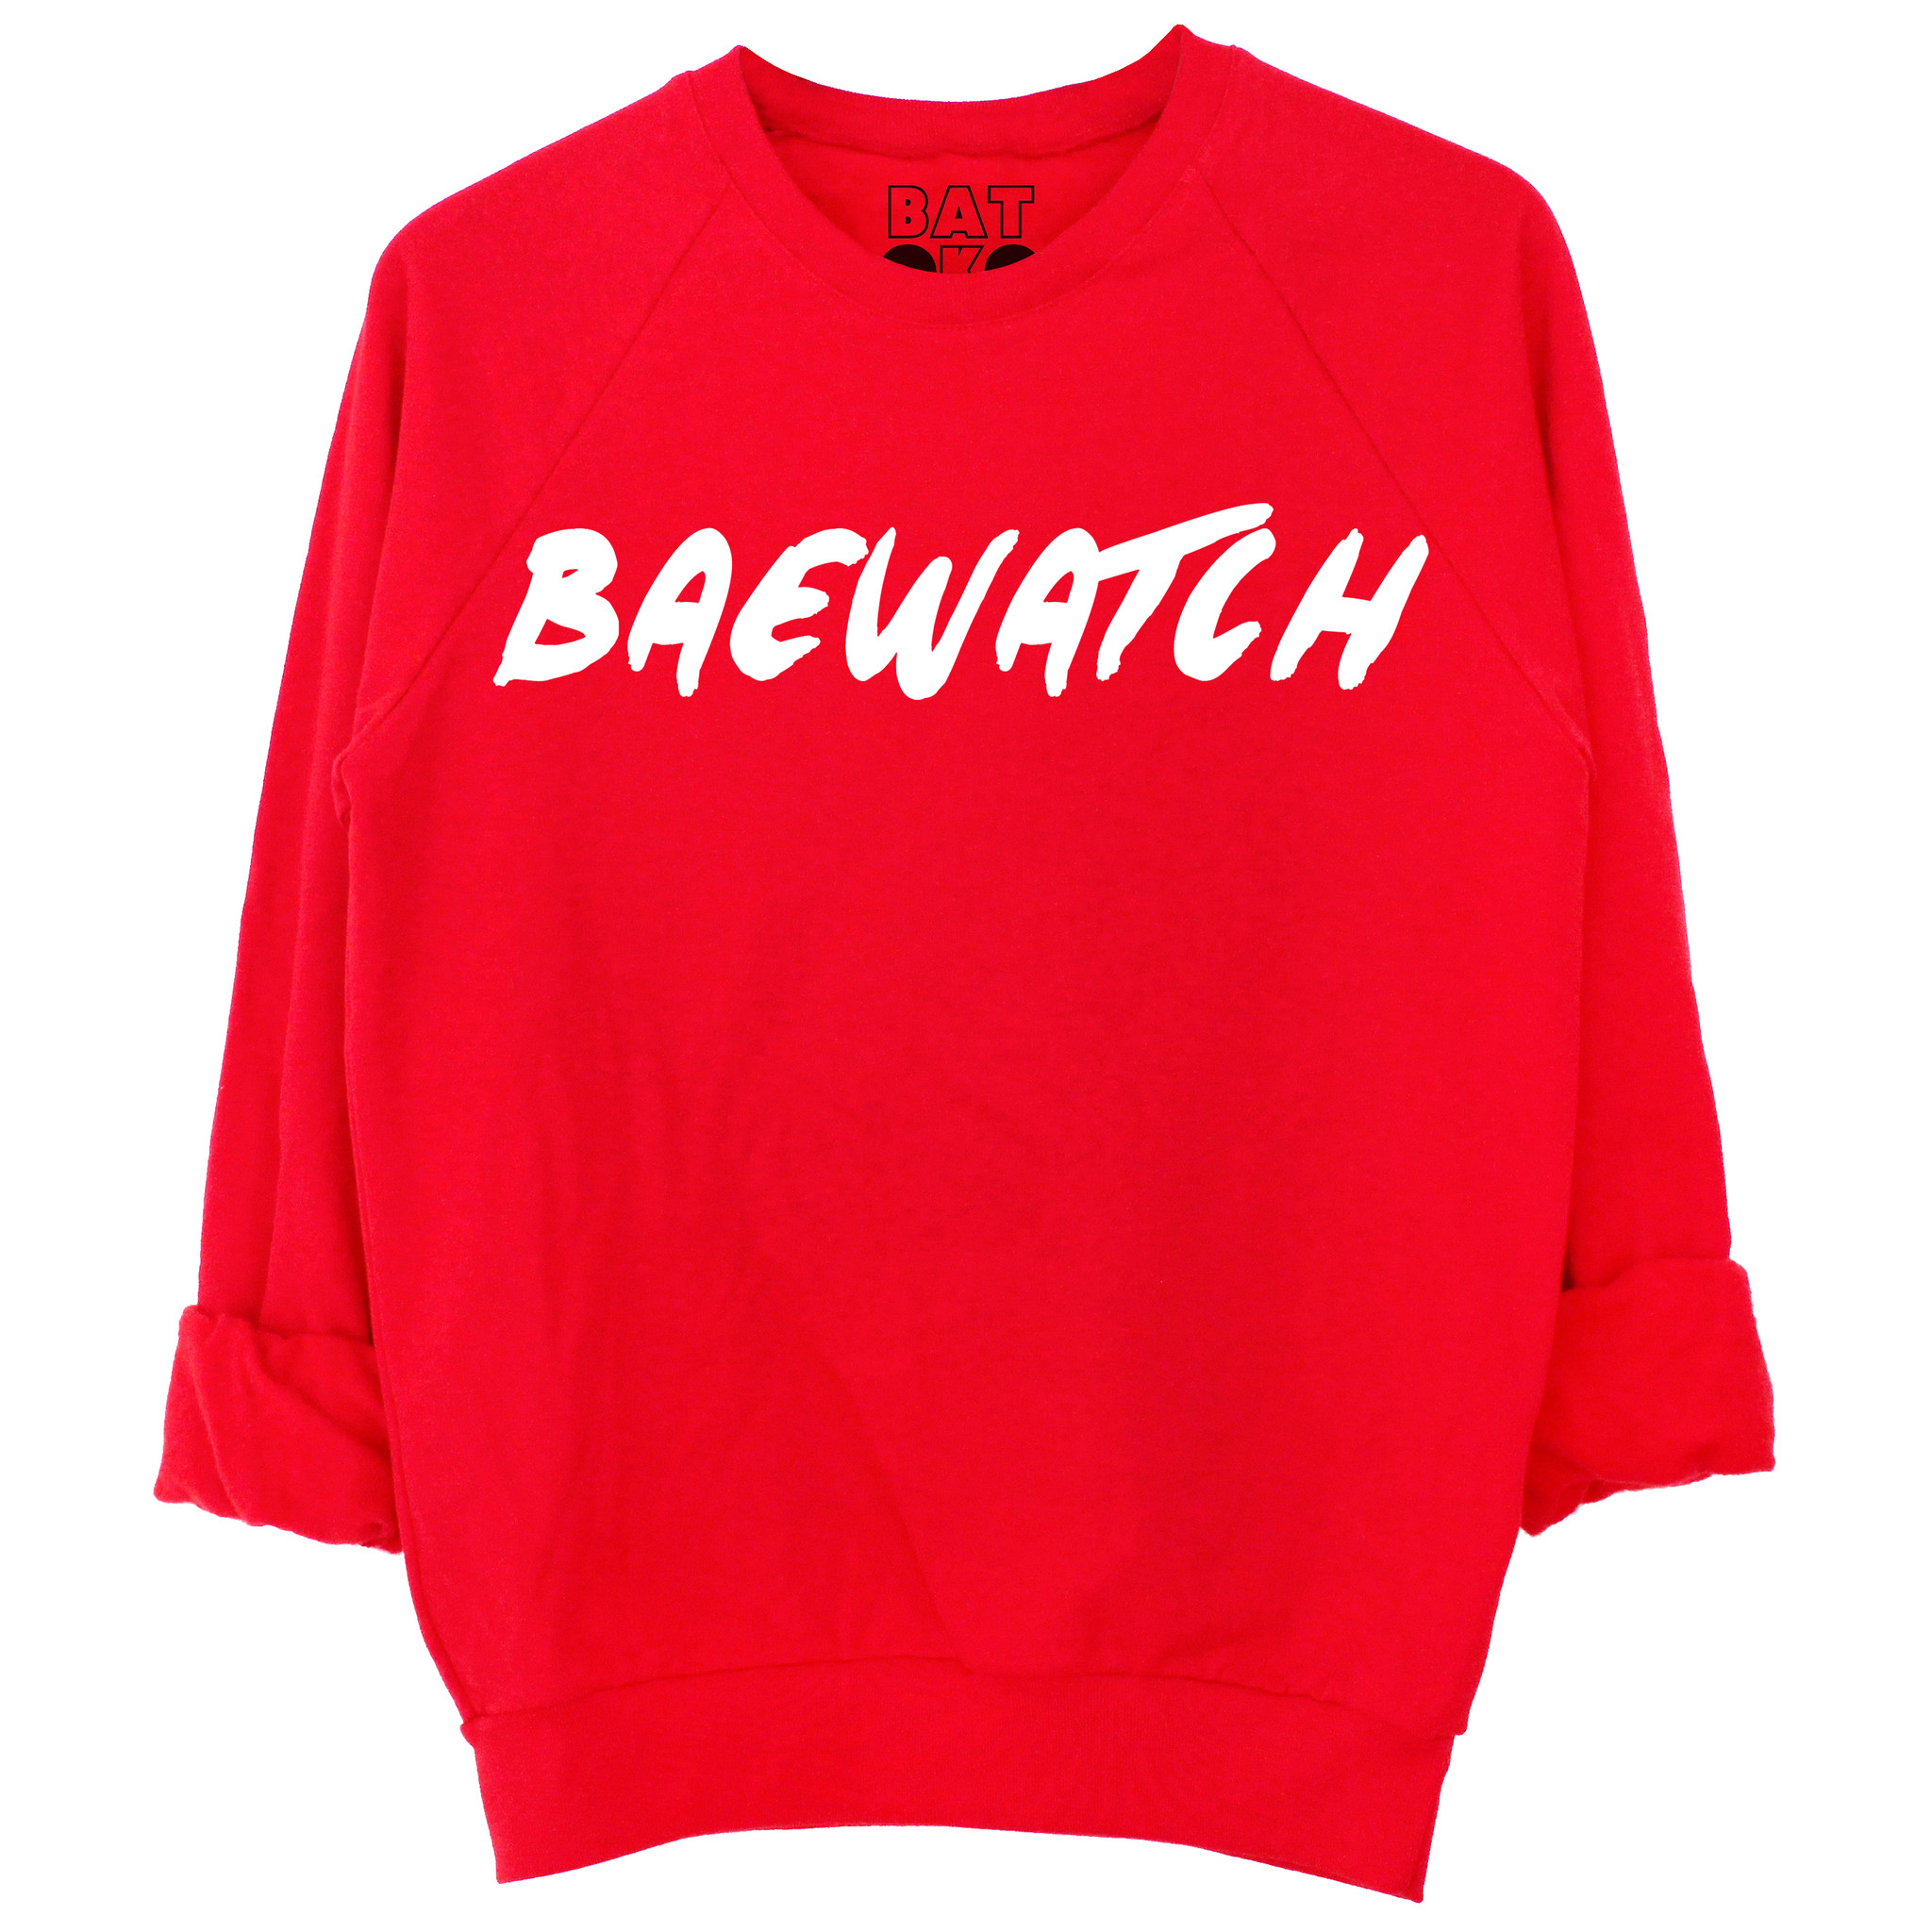 Baewatch sweater